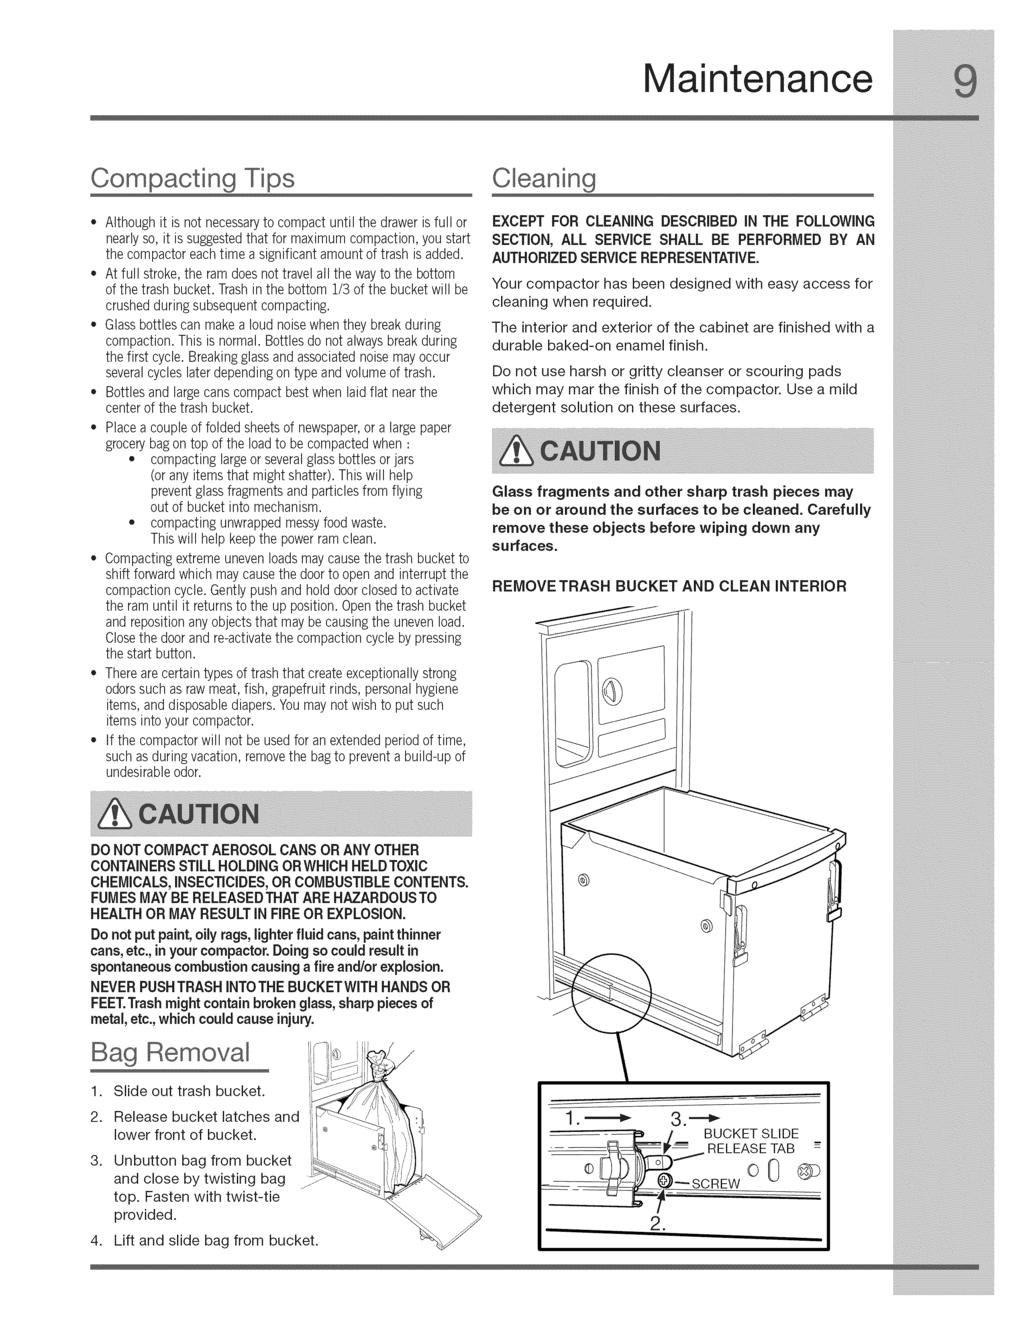 Maintenance Although it is not necessaryto compactuntil the draweris full or nearlyso, it is suggestedthat for maximumcompaction,you start the compactoreachtime a significantamount of trash is added.